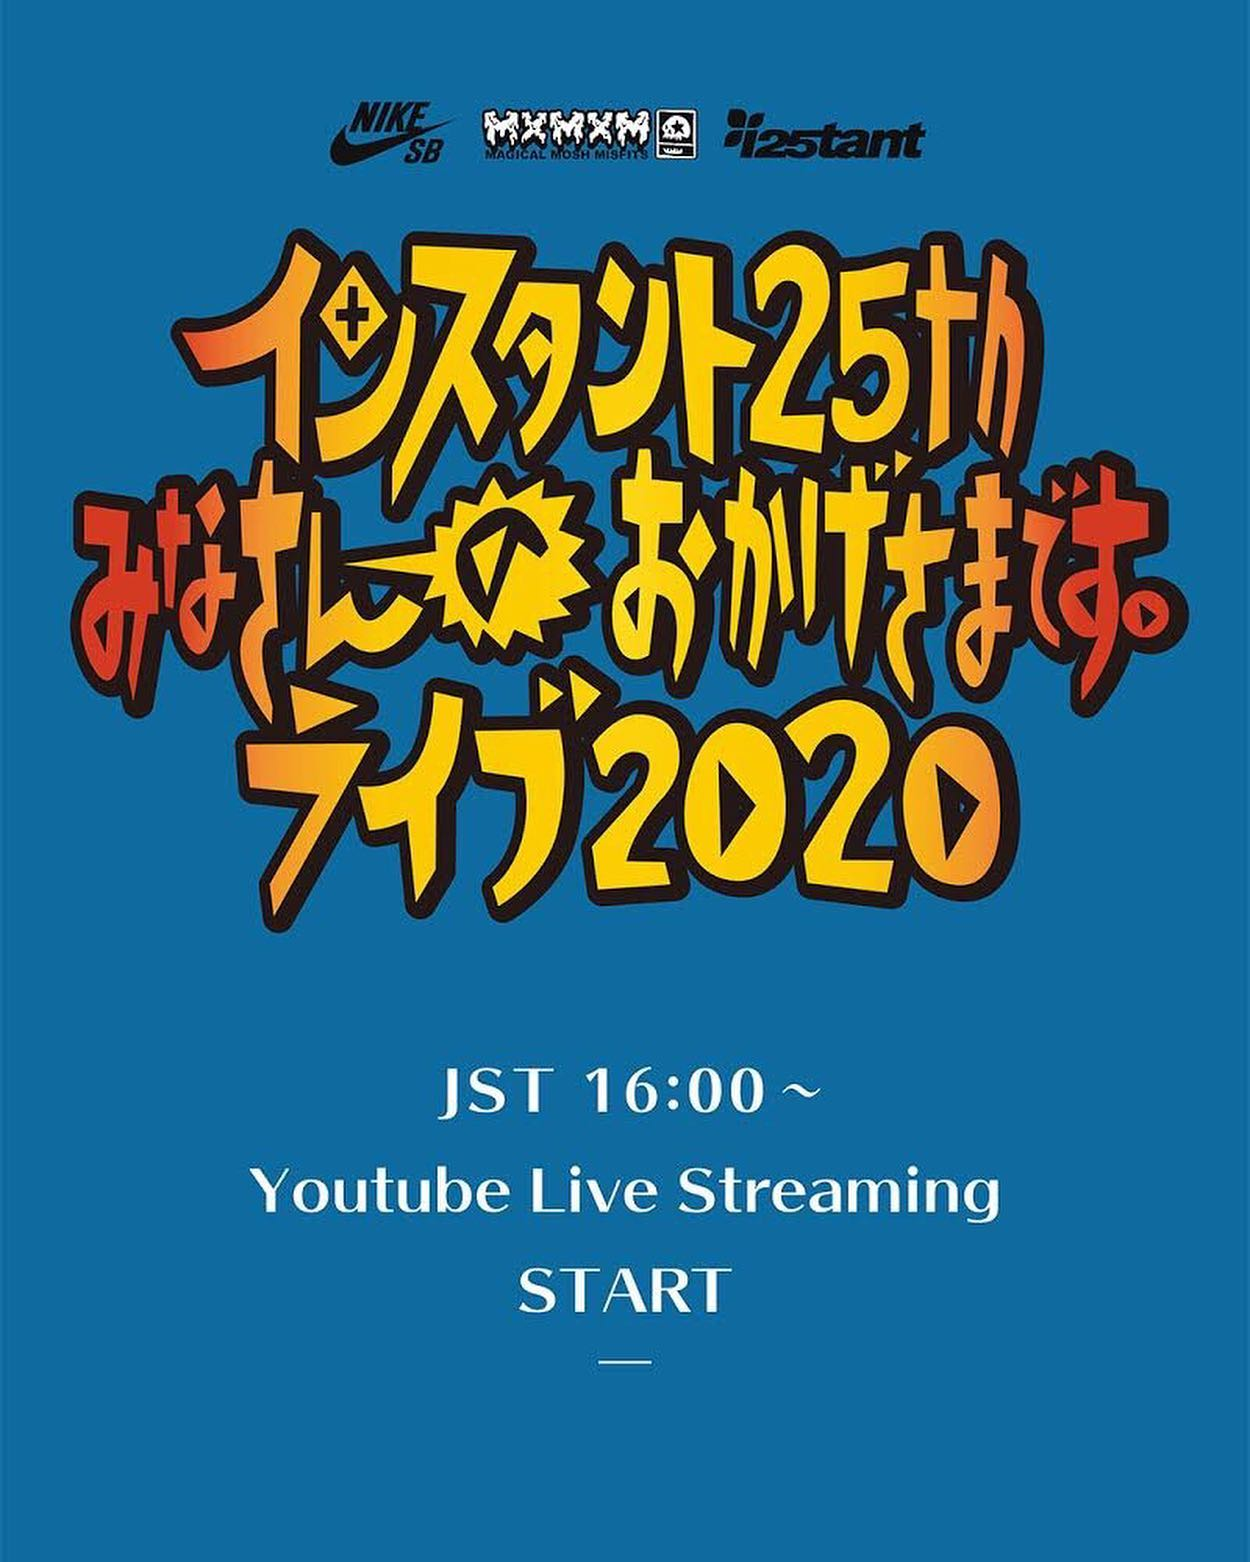 10.25 Sun PM 4:00 - PM 7:00 (JST)@instant_skateboards present YouTube Live Streaming Special ProgramGirls grip job! / 元祖!デッキ拝見 / ハウツースケートボウ道 / High Ollie Contest 2020 / Best Trick Contest / Nike SB 大抽選会緊急生特番、お見逃しなく!(配信会場への入場は完全招待制)Why don't you skate?#i25tant #instantskateshop #instantskateboards@raito.nema @kojir0123 @toaaaaaaaa_kanazawa @take_action_films📸 @uo9_01134